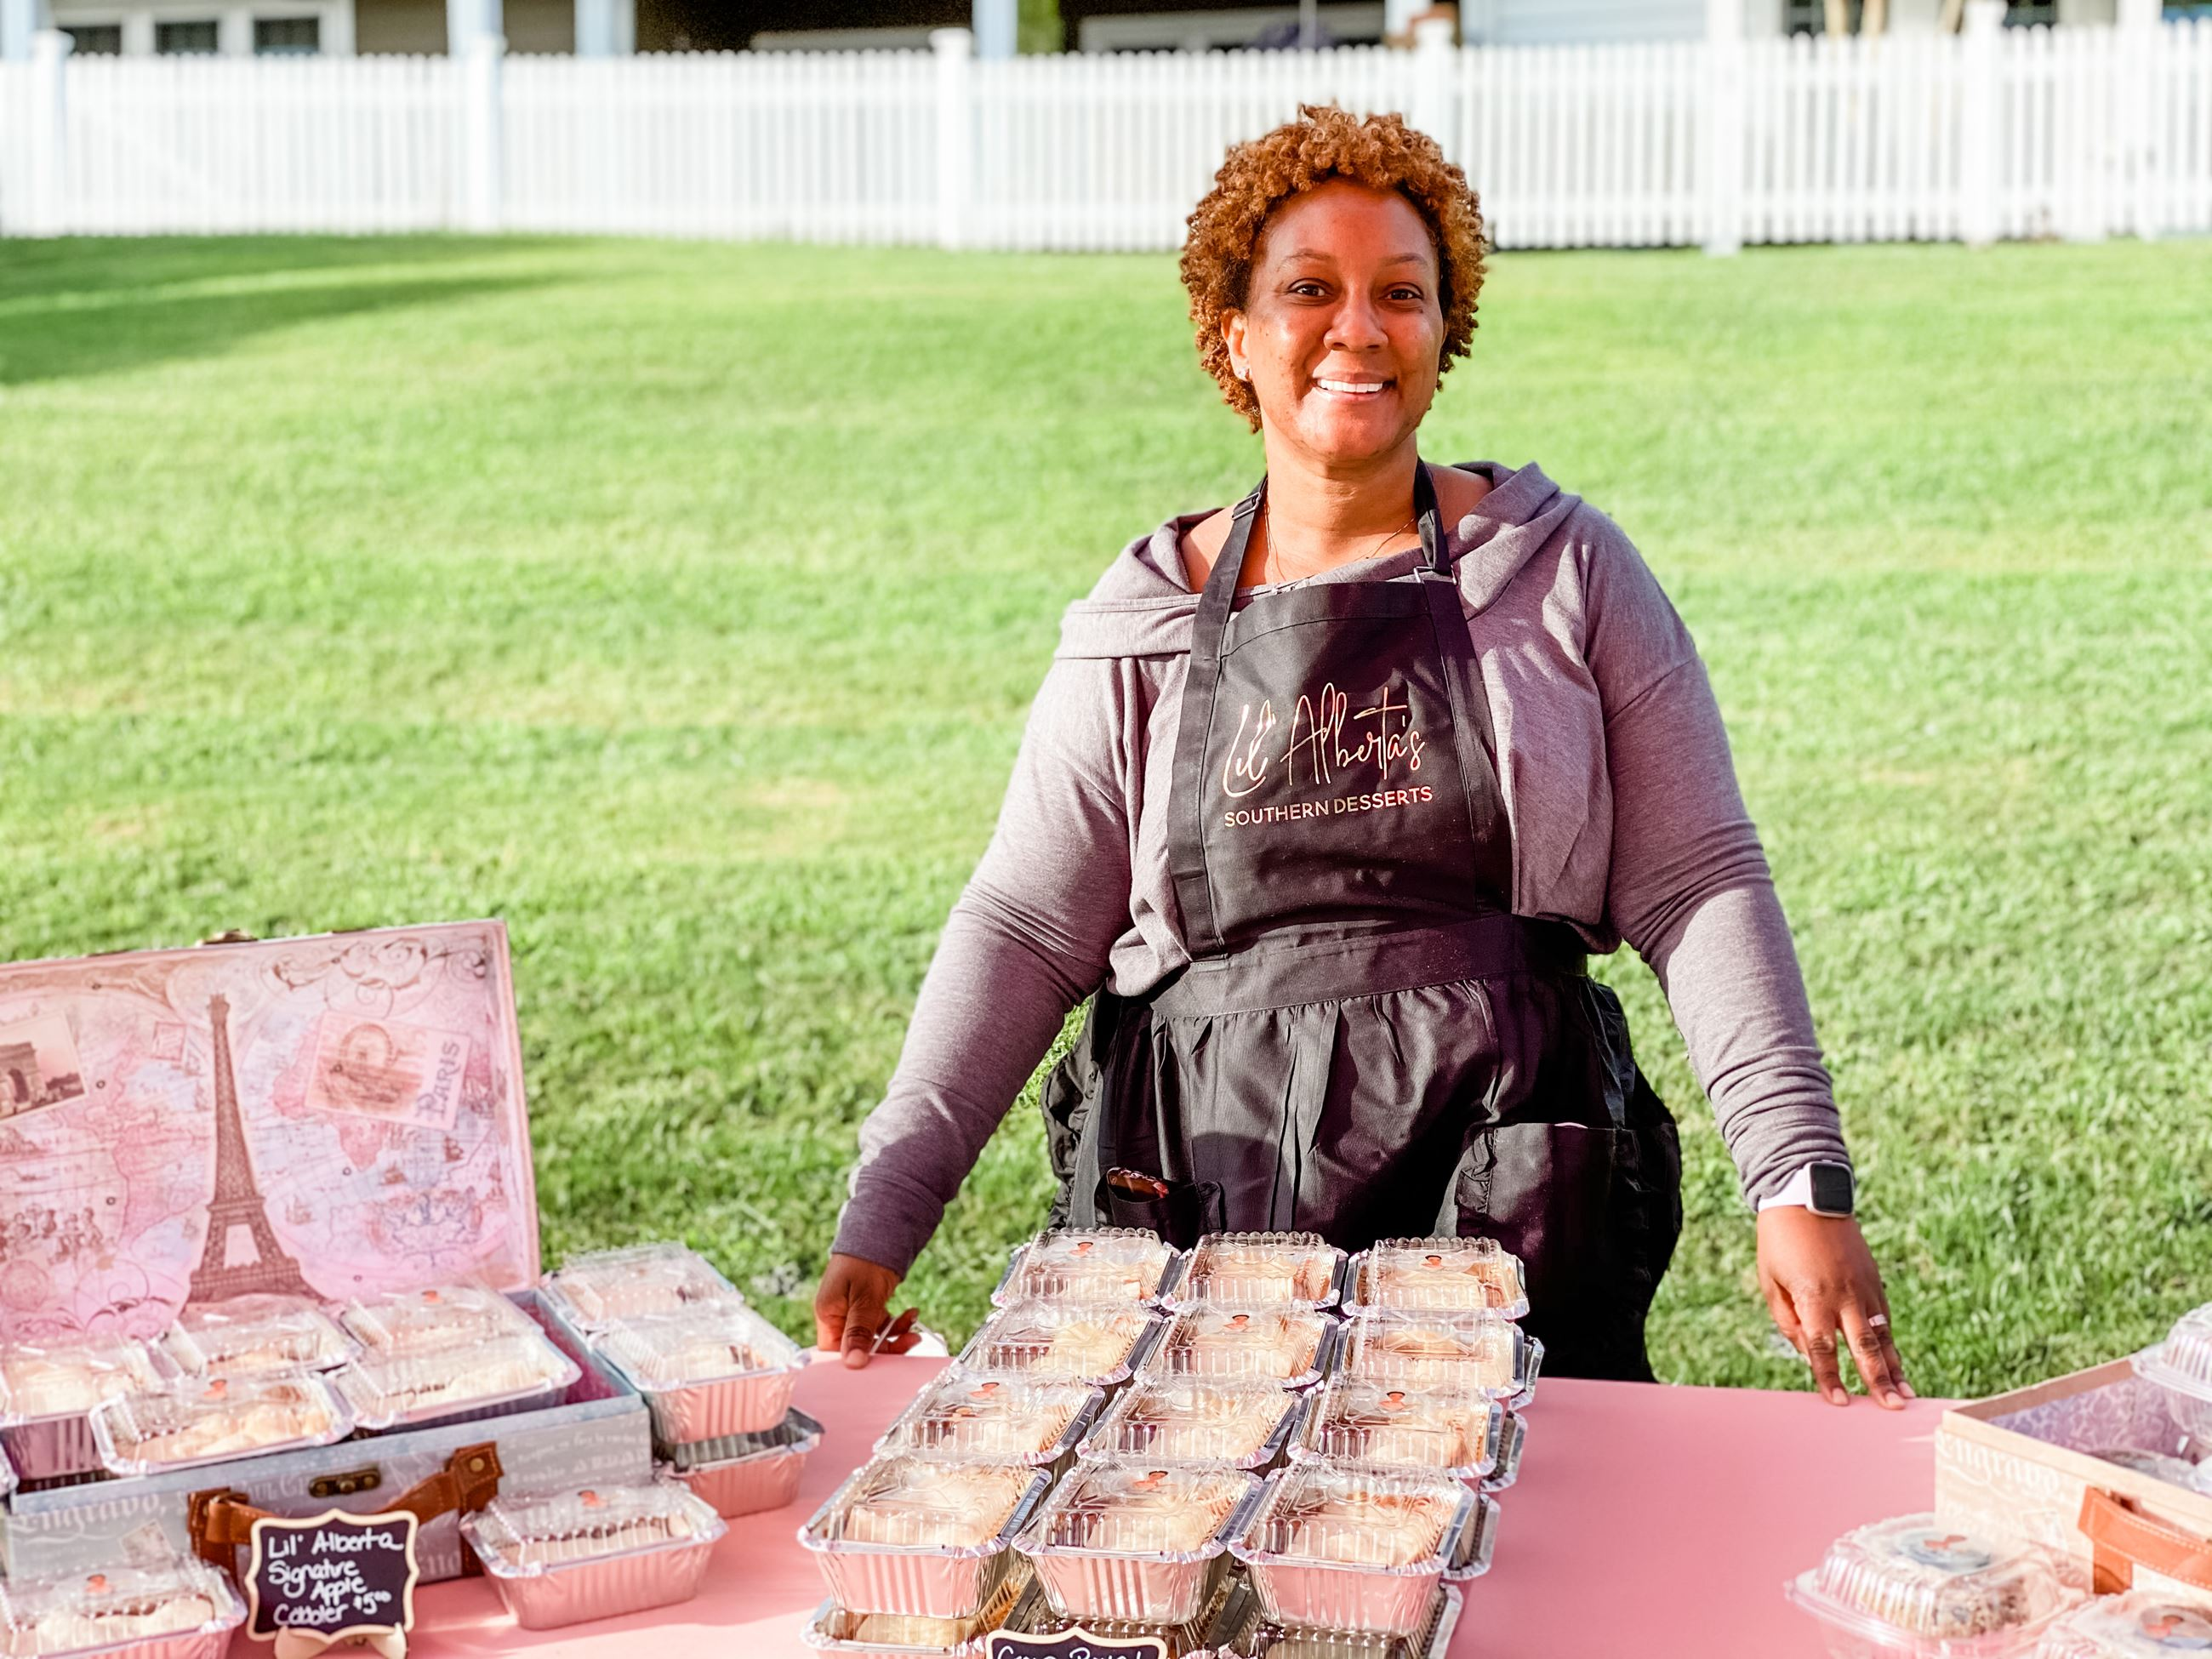 Lil Aberta's desserts selling baked goods during 2020 French Market